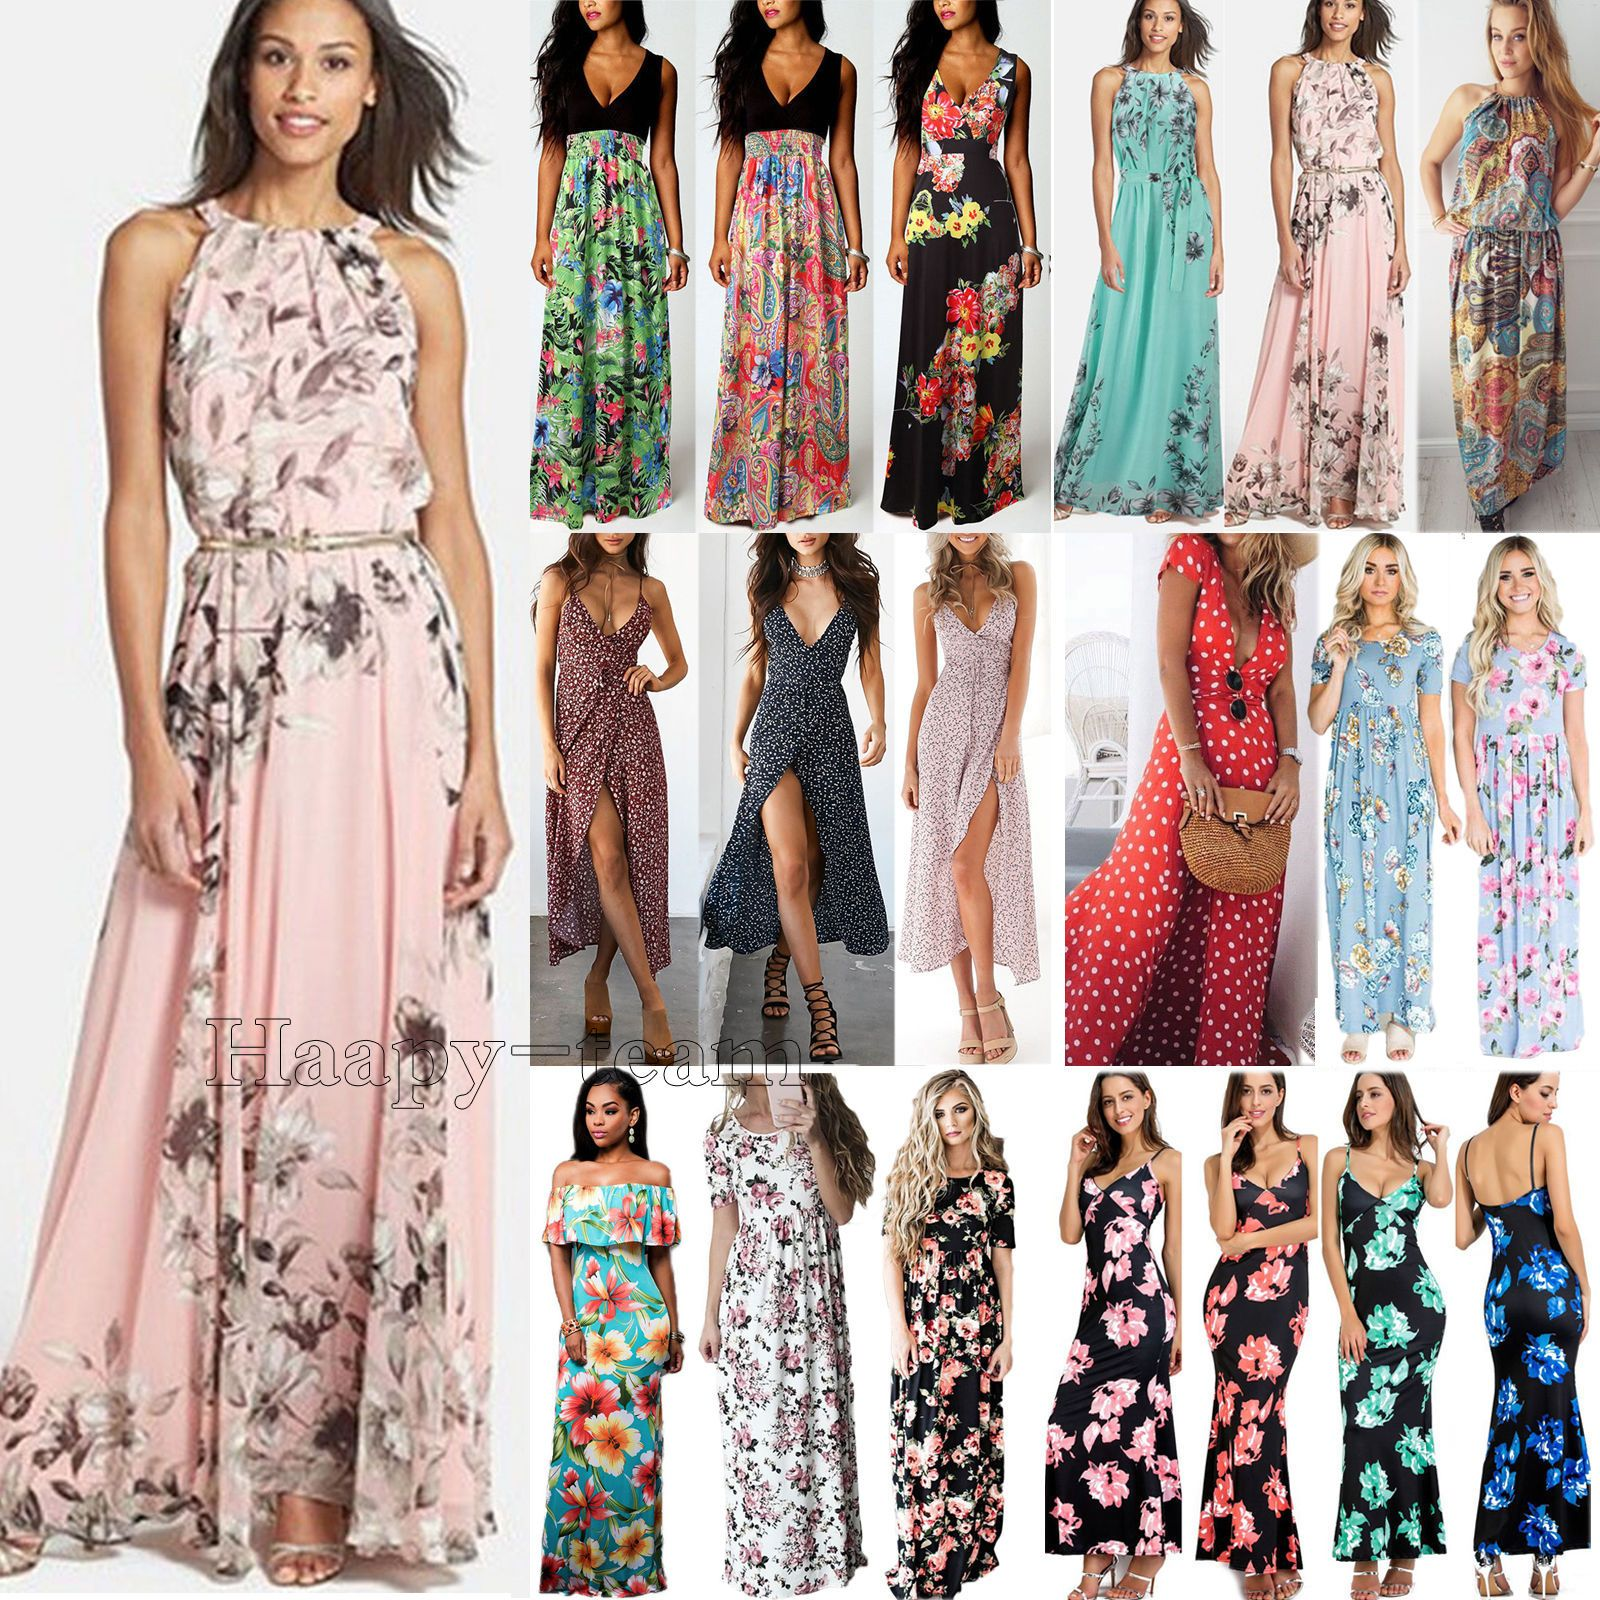 eaeca45c2da1f9 Women Boho Floral Long Maxi Dress Cocktail Party Evening Summer Beach  Sundress | eBay